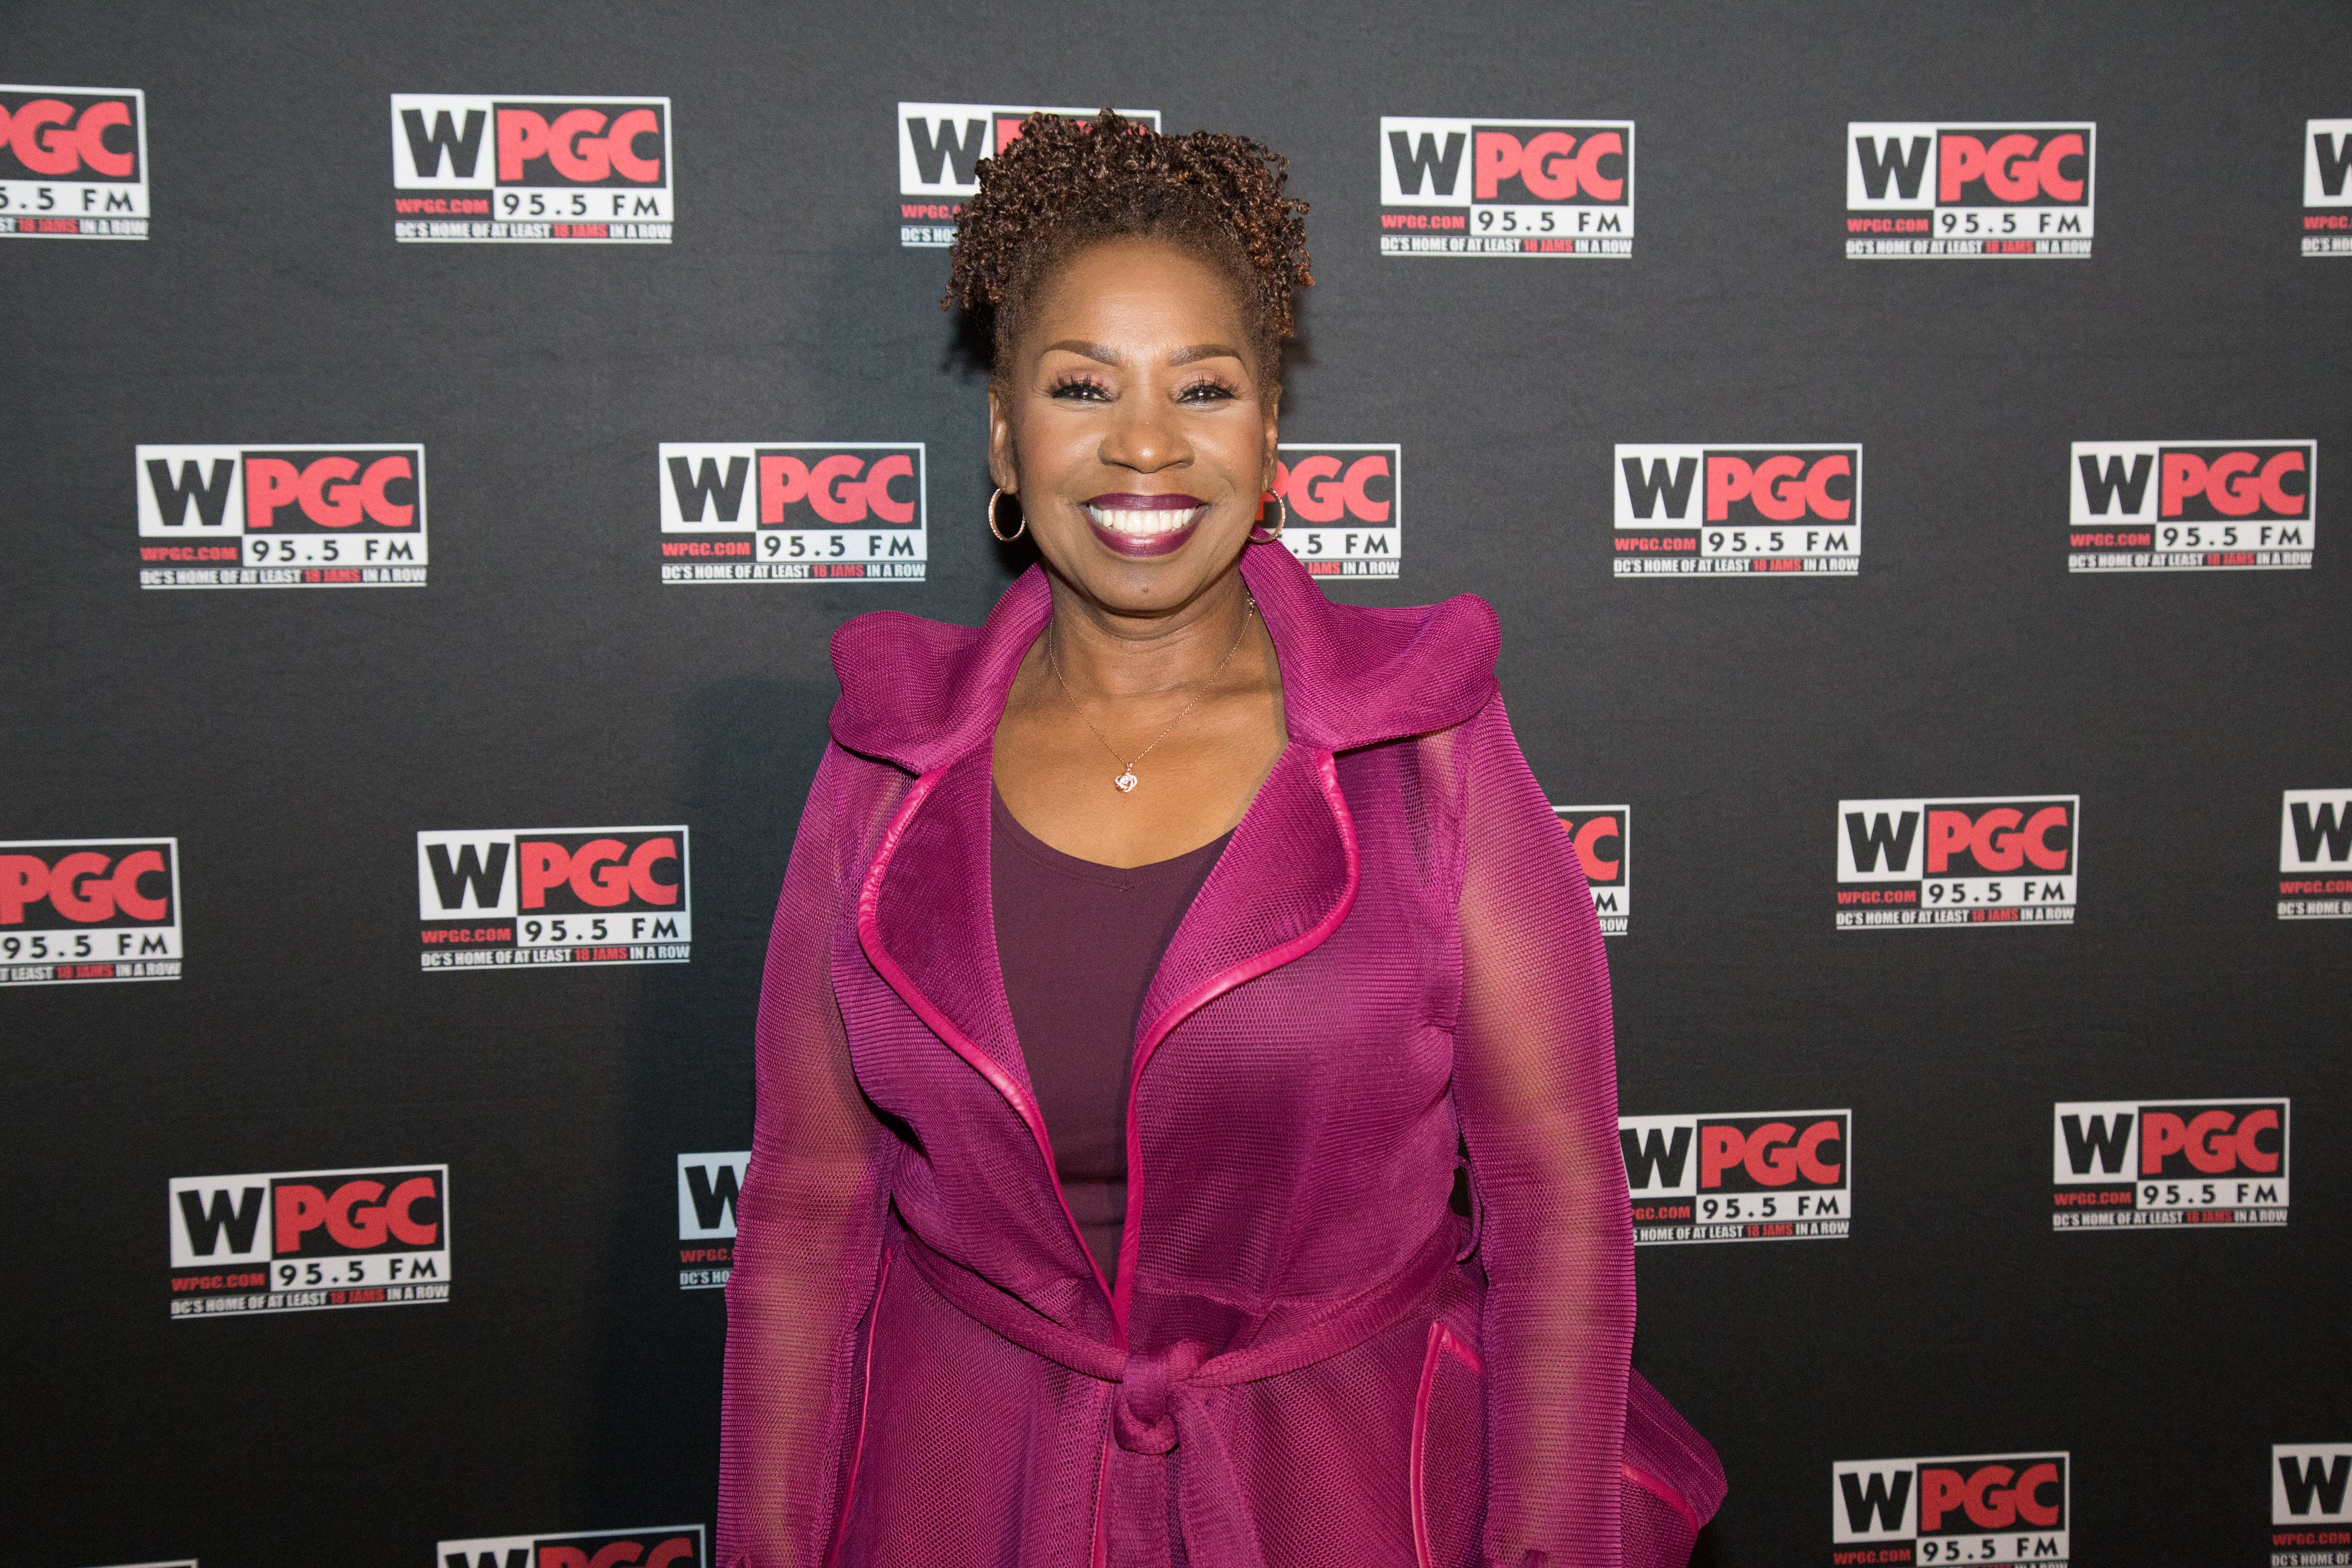 Iyanla Vanzant attends WPGC's 18th Annual For Sisters Only at Walter E. Washington Convention Center on November 4, 2017 in Washington, DC | Photo: GettyImages